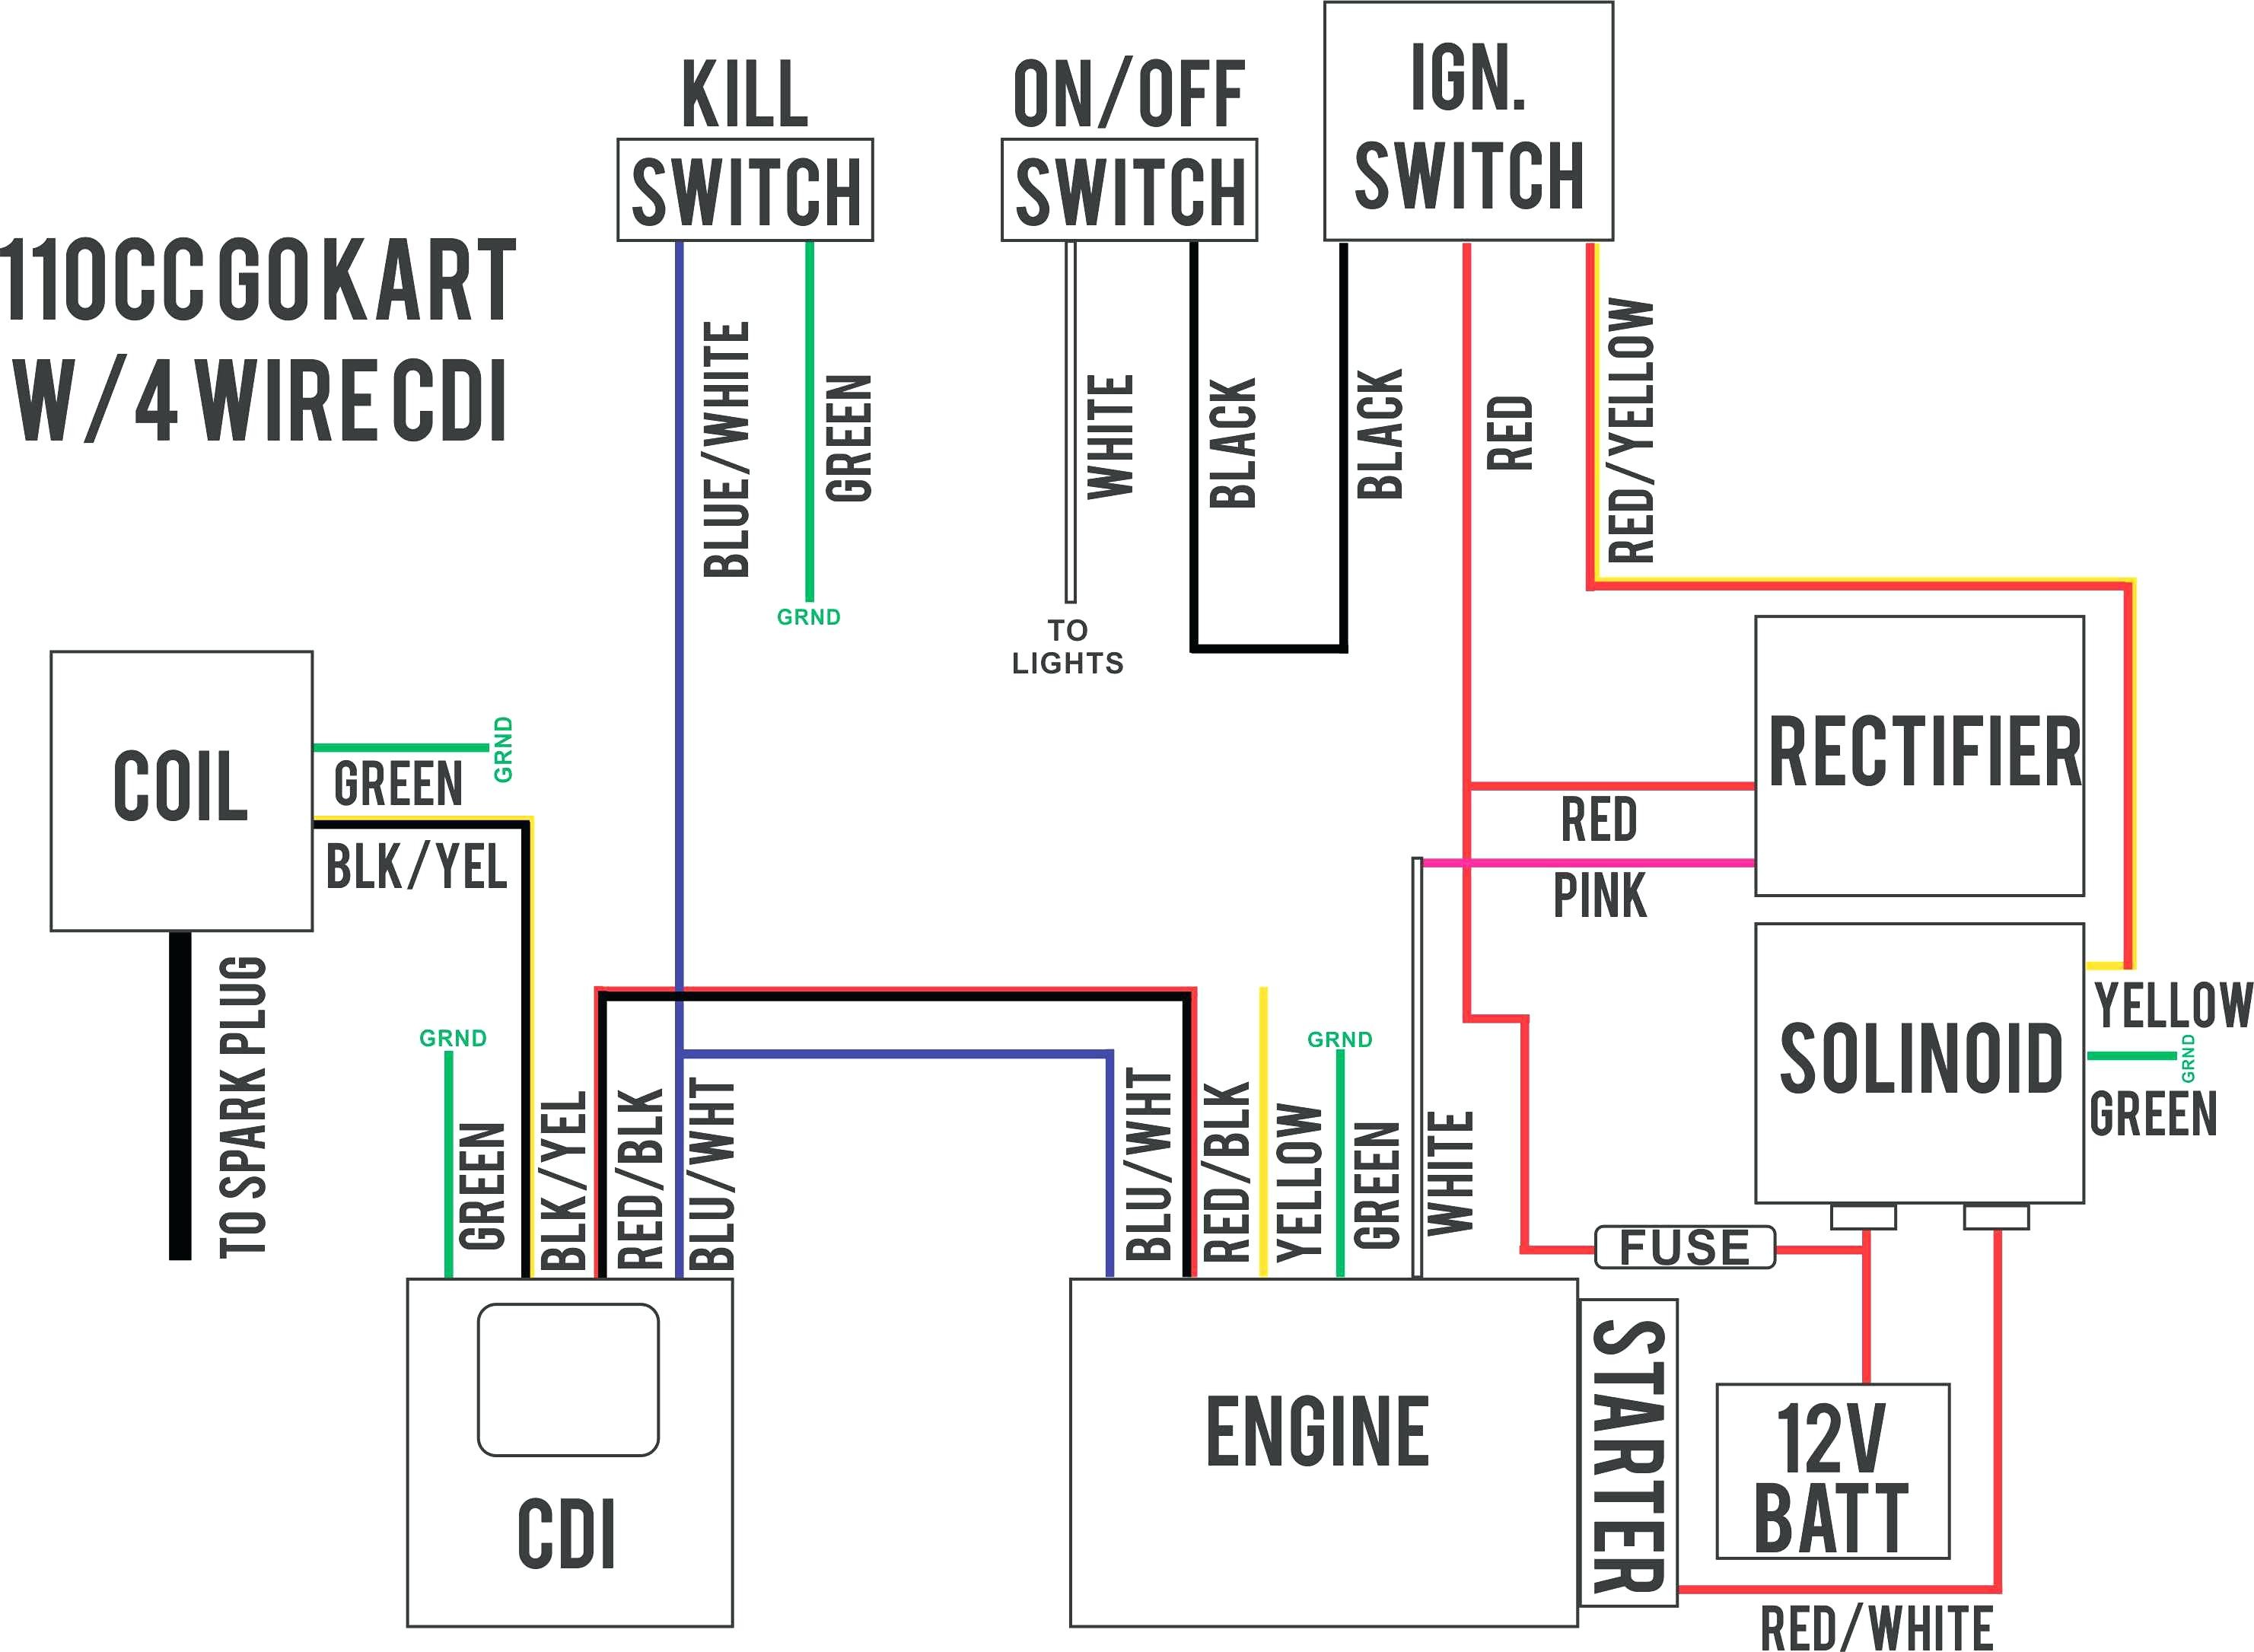 12v Switch Panel Wiring Diagram Awesome Image